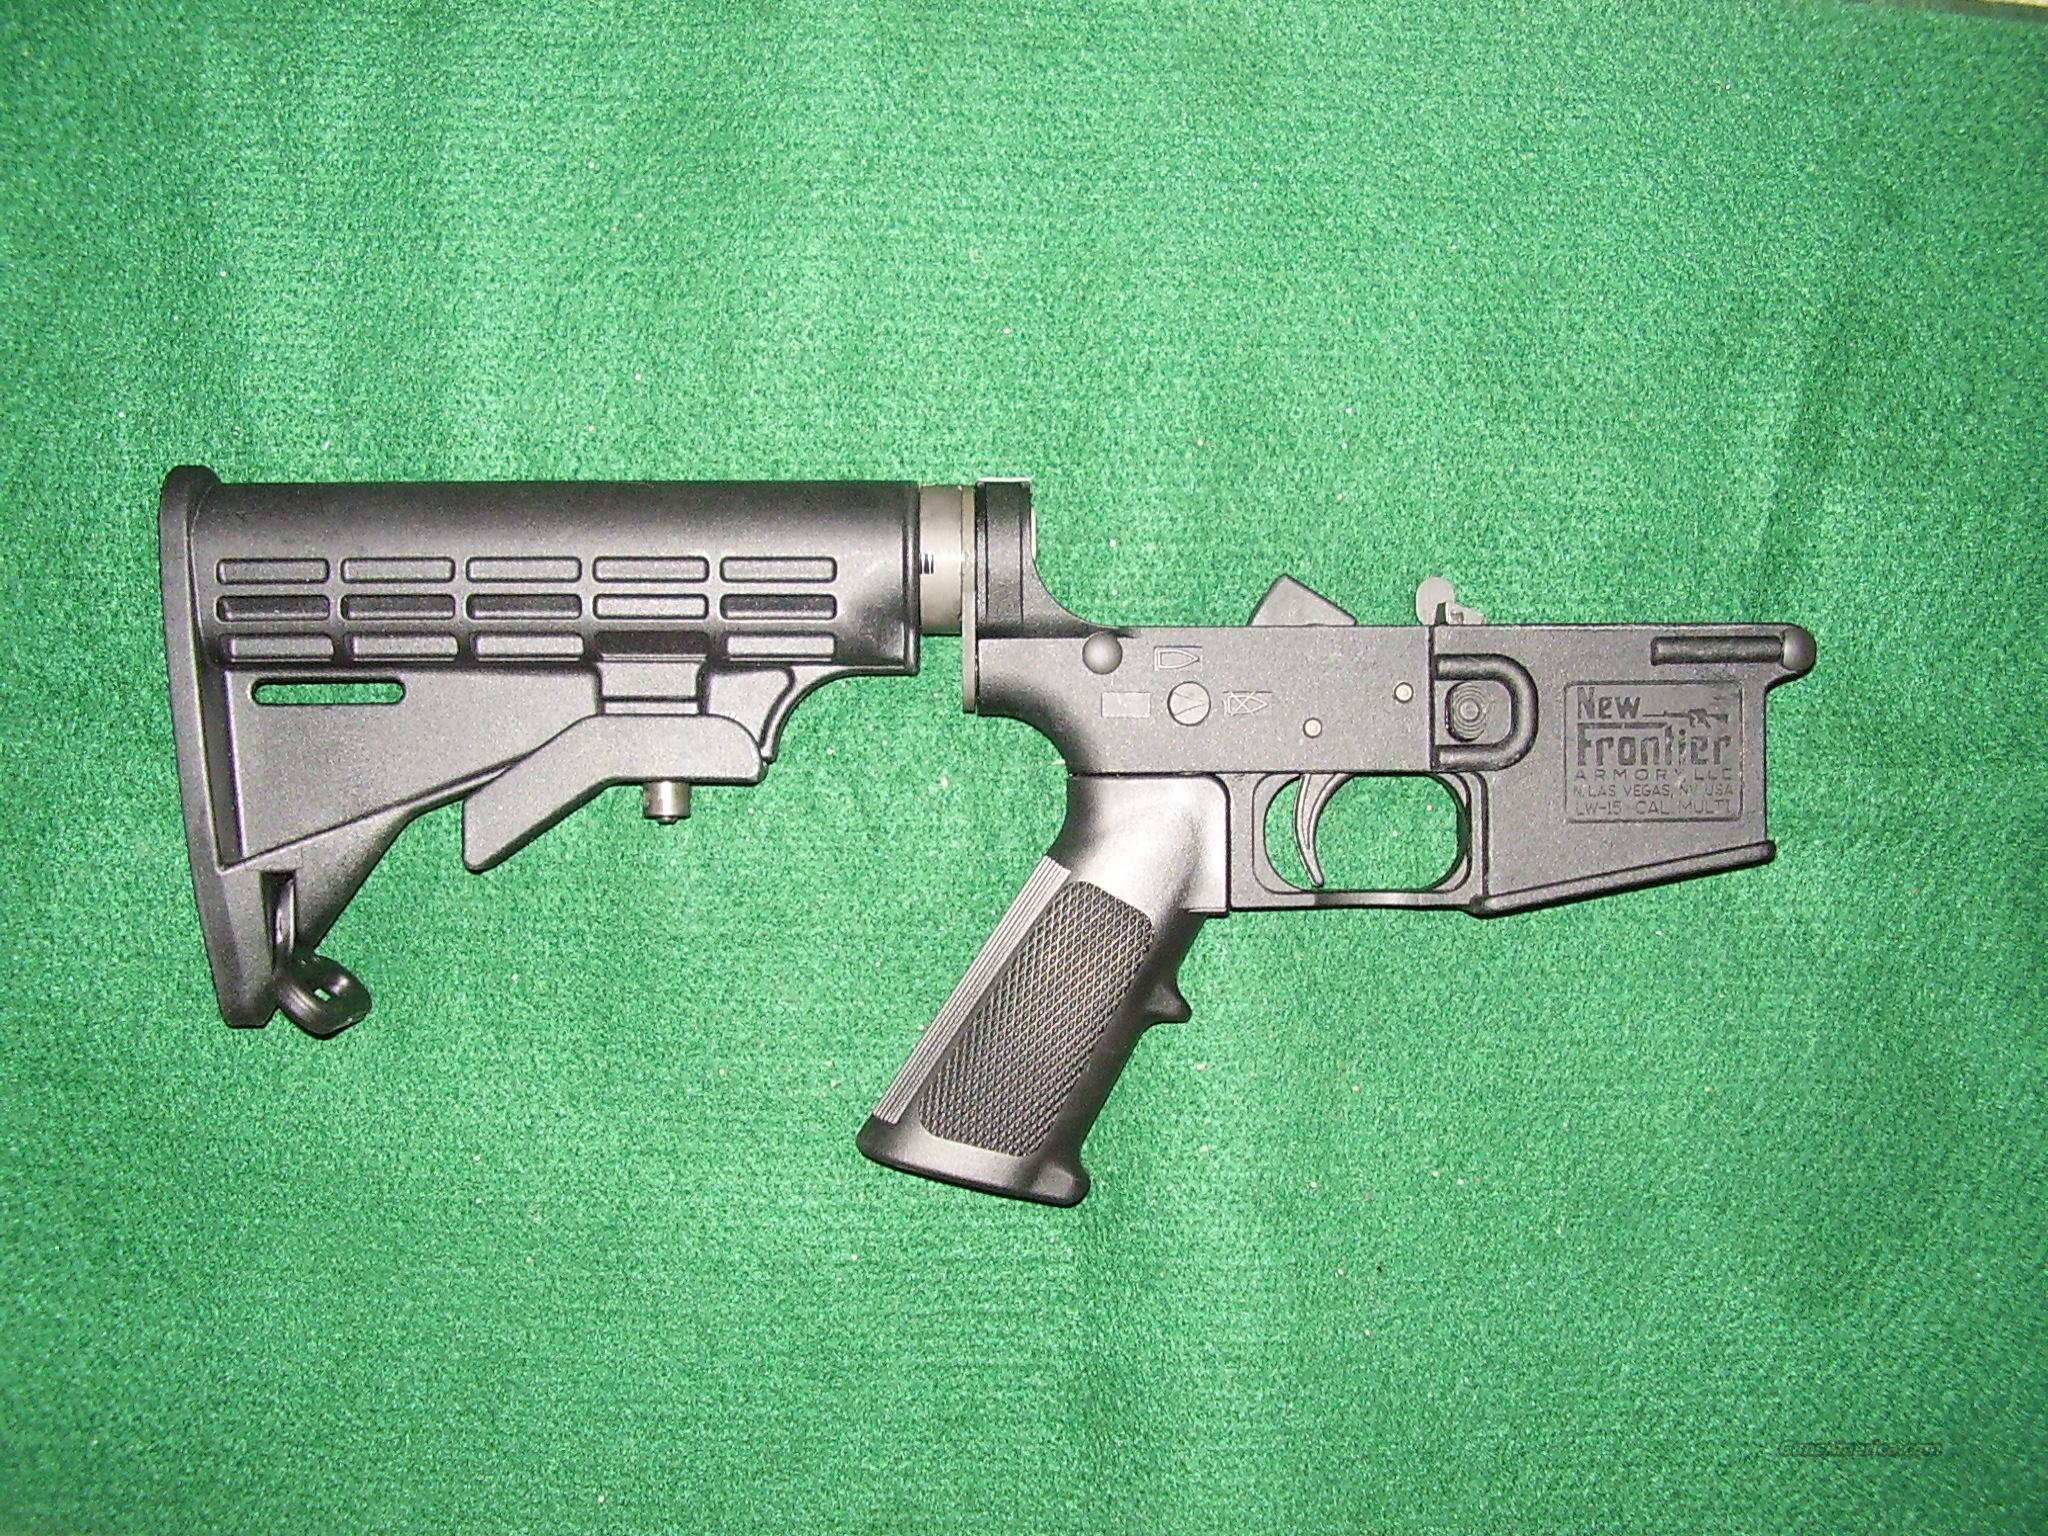 LW15 Complete Lower  Guns > Rifles > AR-15 Rifles - Small Manufacturers > Lower Only